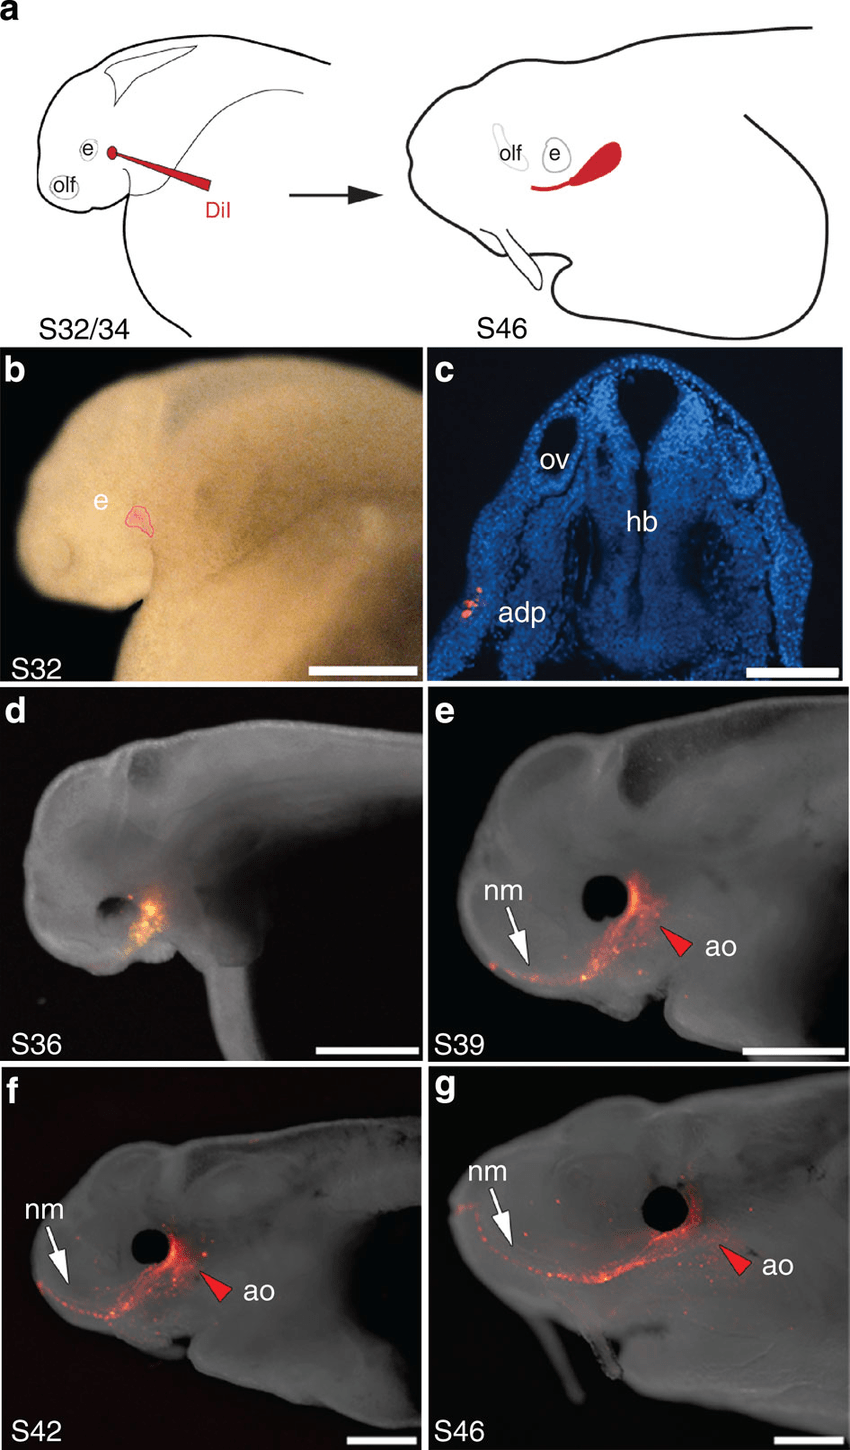 hight resolution of in vivo labelling of lateral line placodes a schematic of in vivo labelling